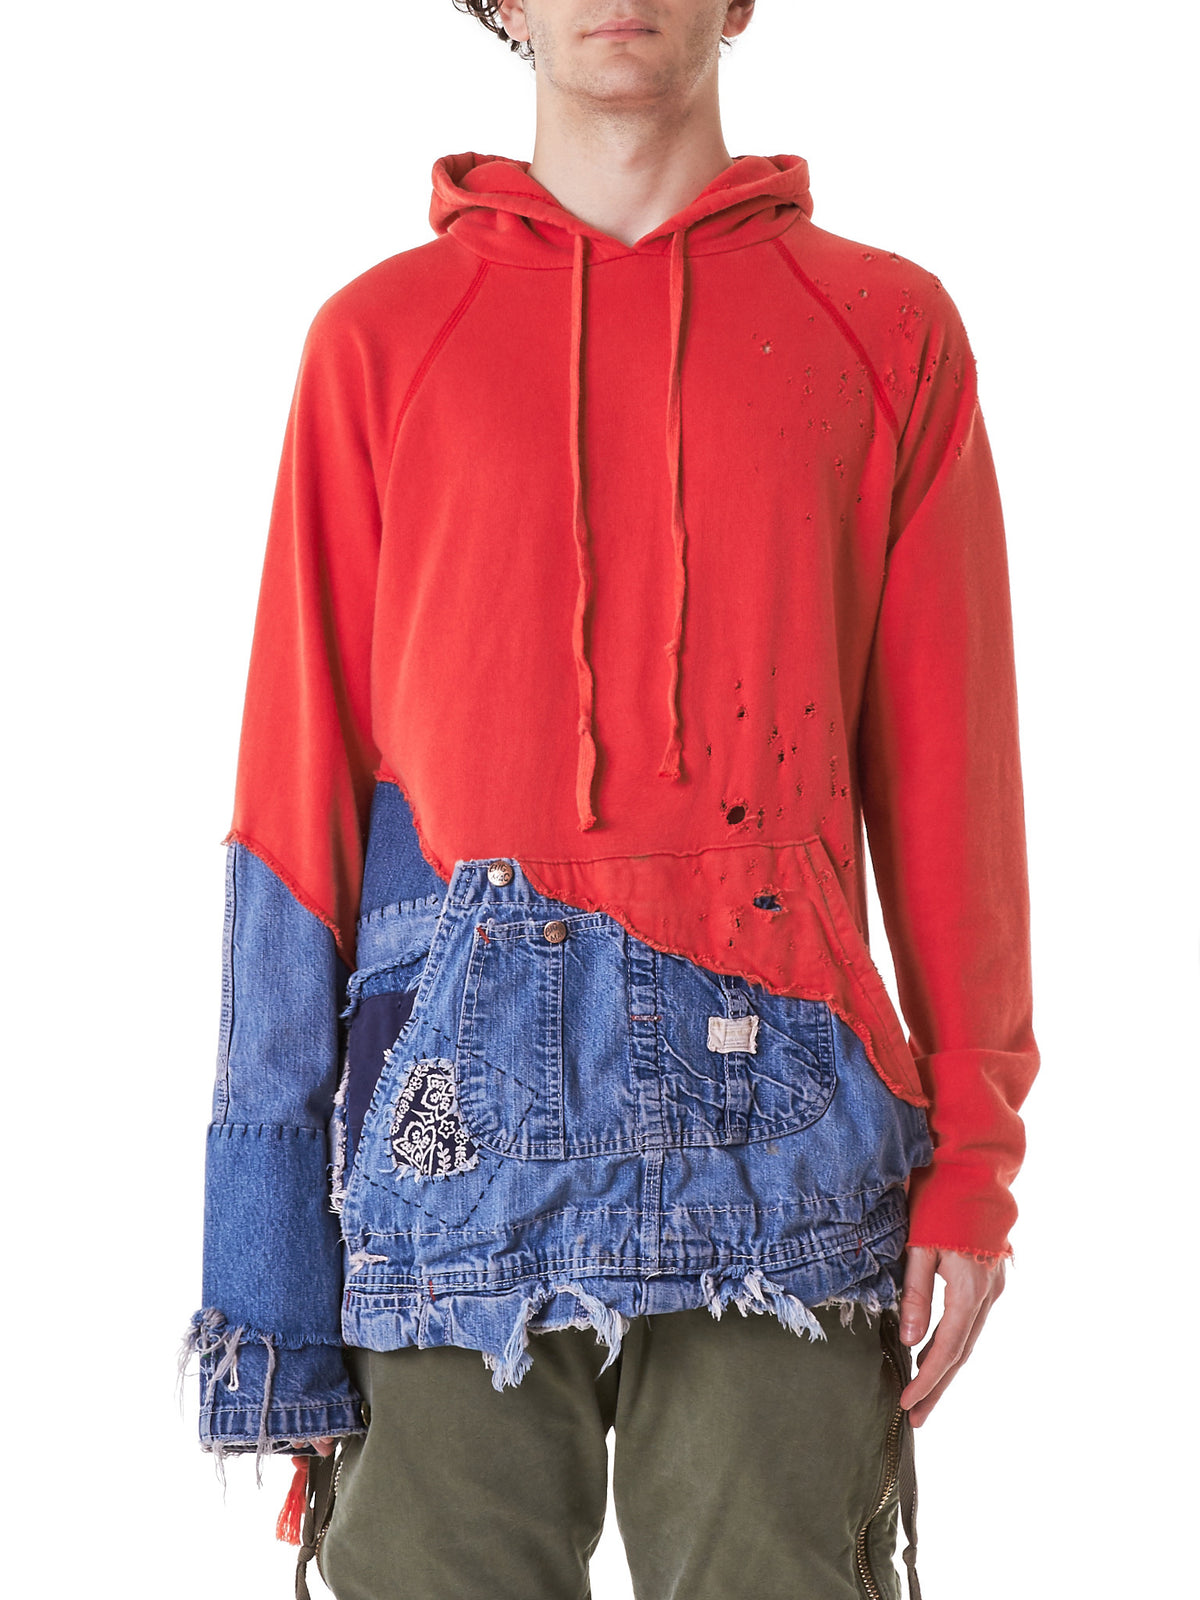 Reconstructed Hooded Sweater (GLSS17-M053-RED-DENIMBLUE) - H. Lorenzo